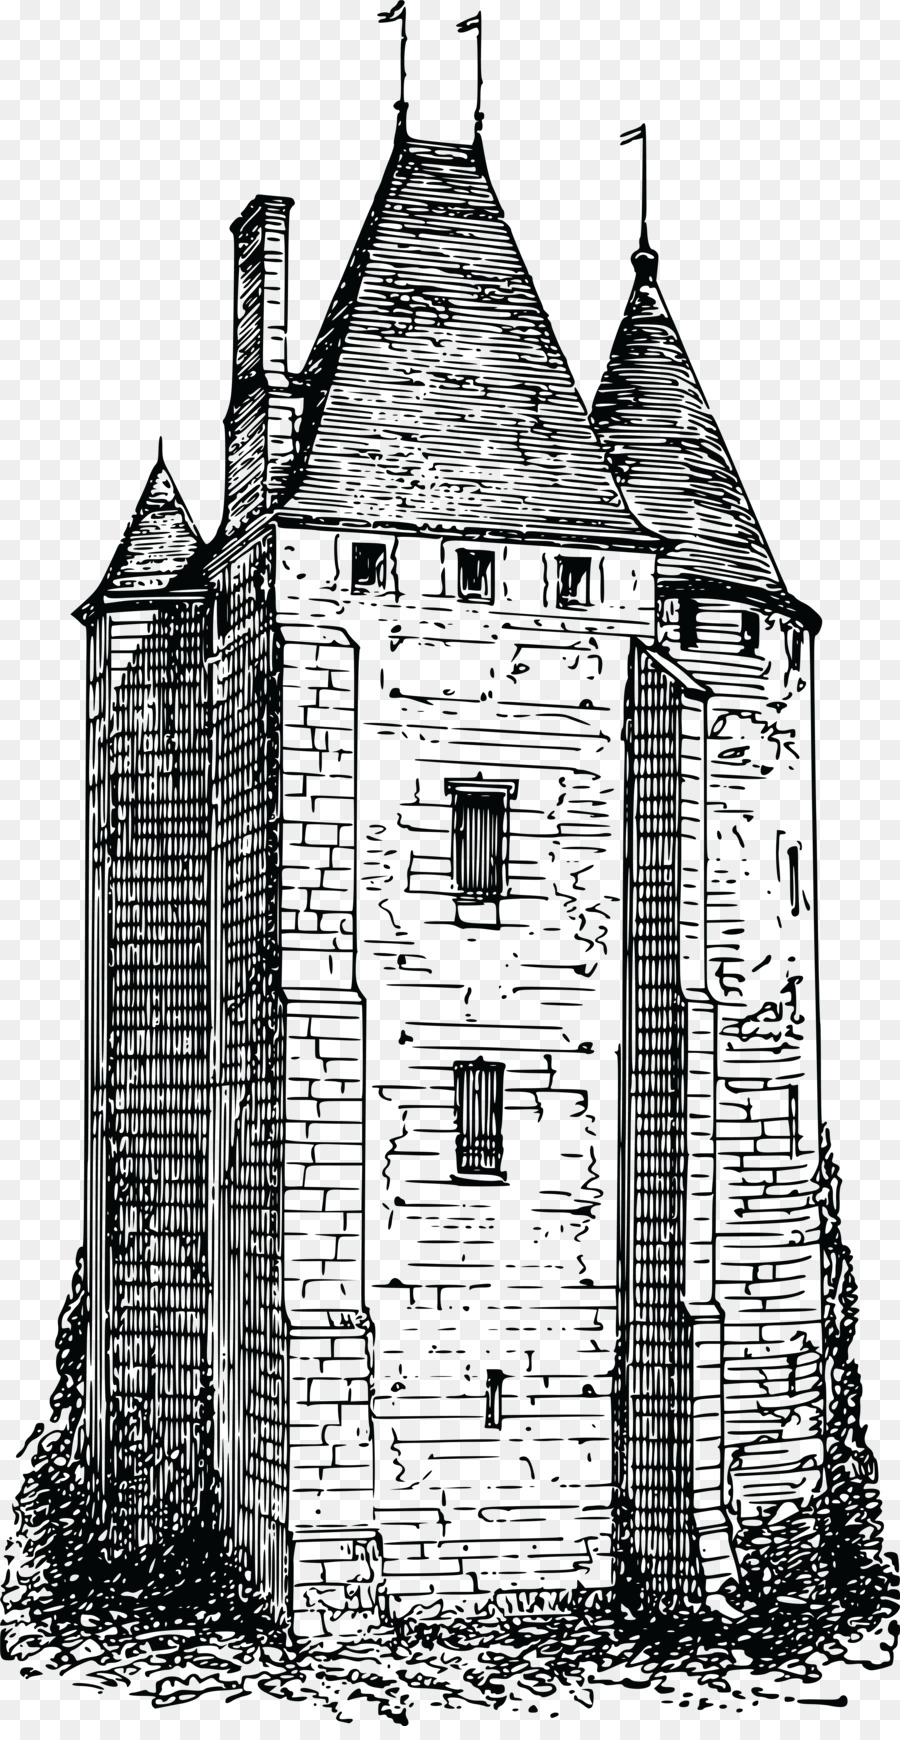 Tower clipart medieval tower. Castle cartoon drawing building